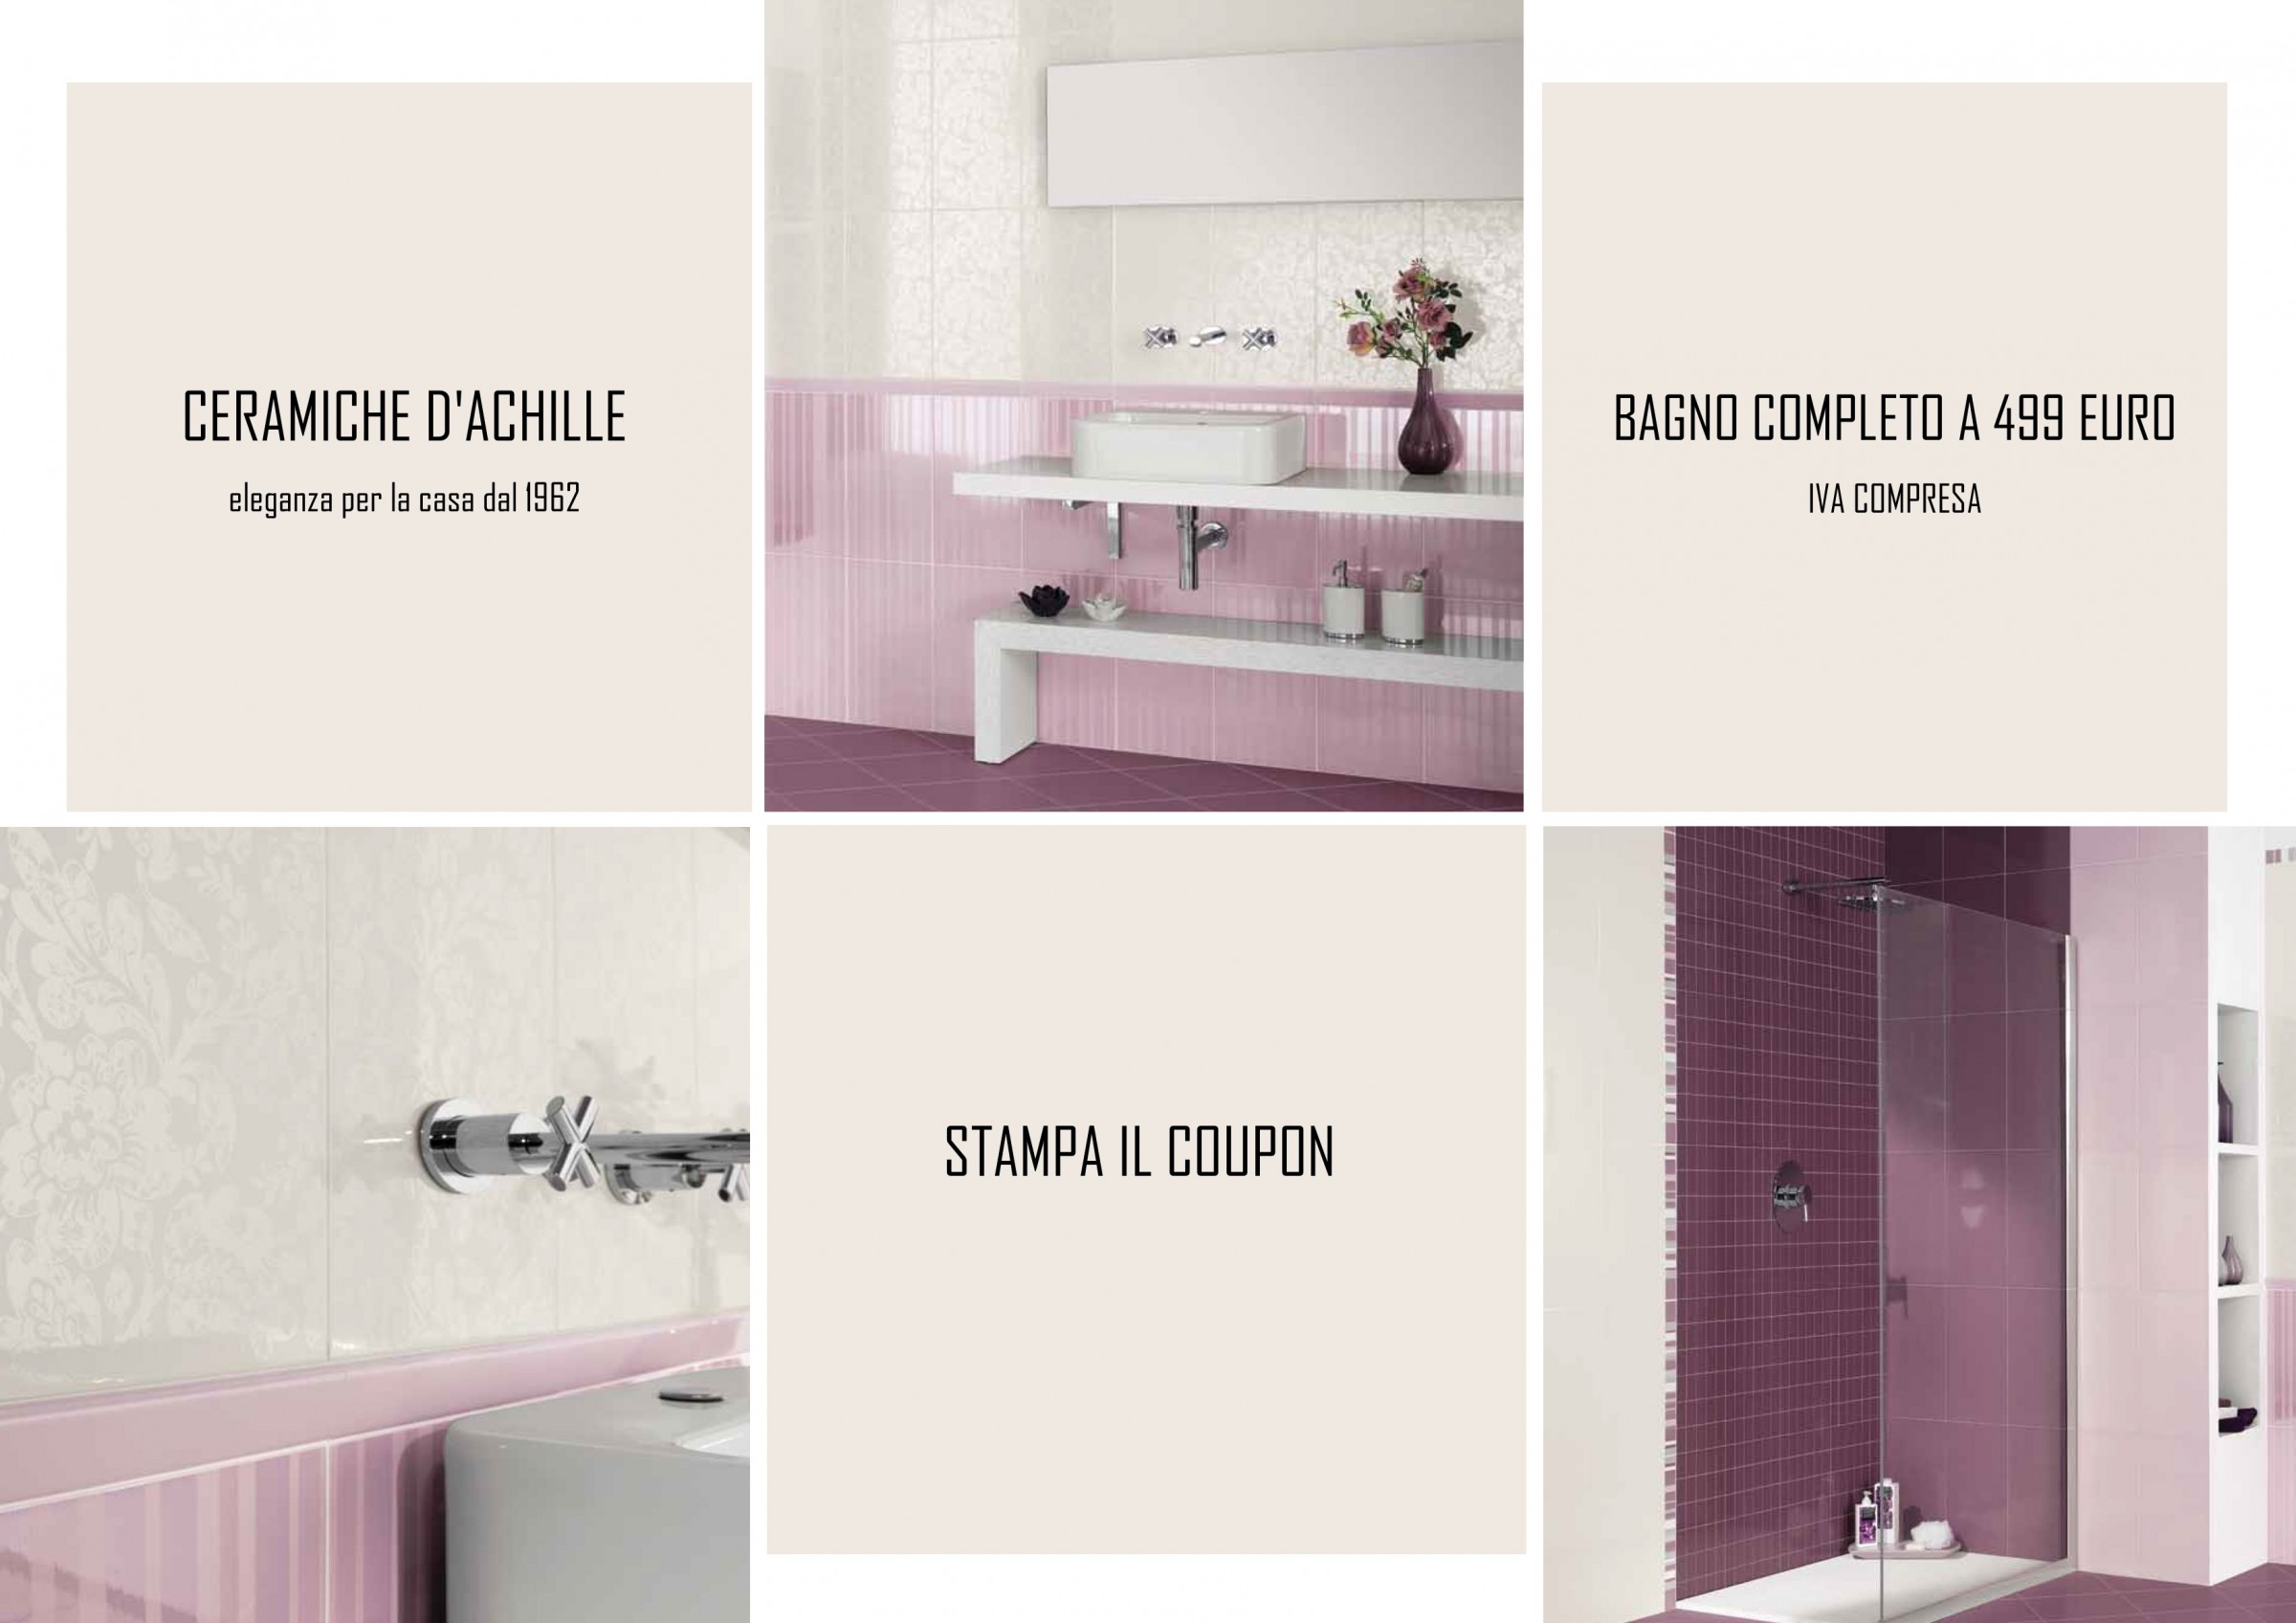 Stunning Offerta Bagno Completo Gallery - Home Design Ideas 2017 ...